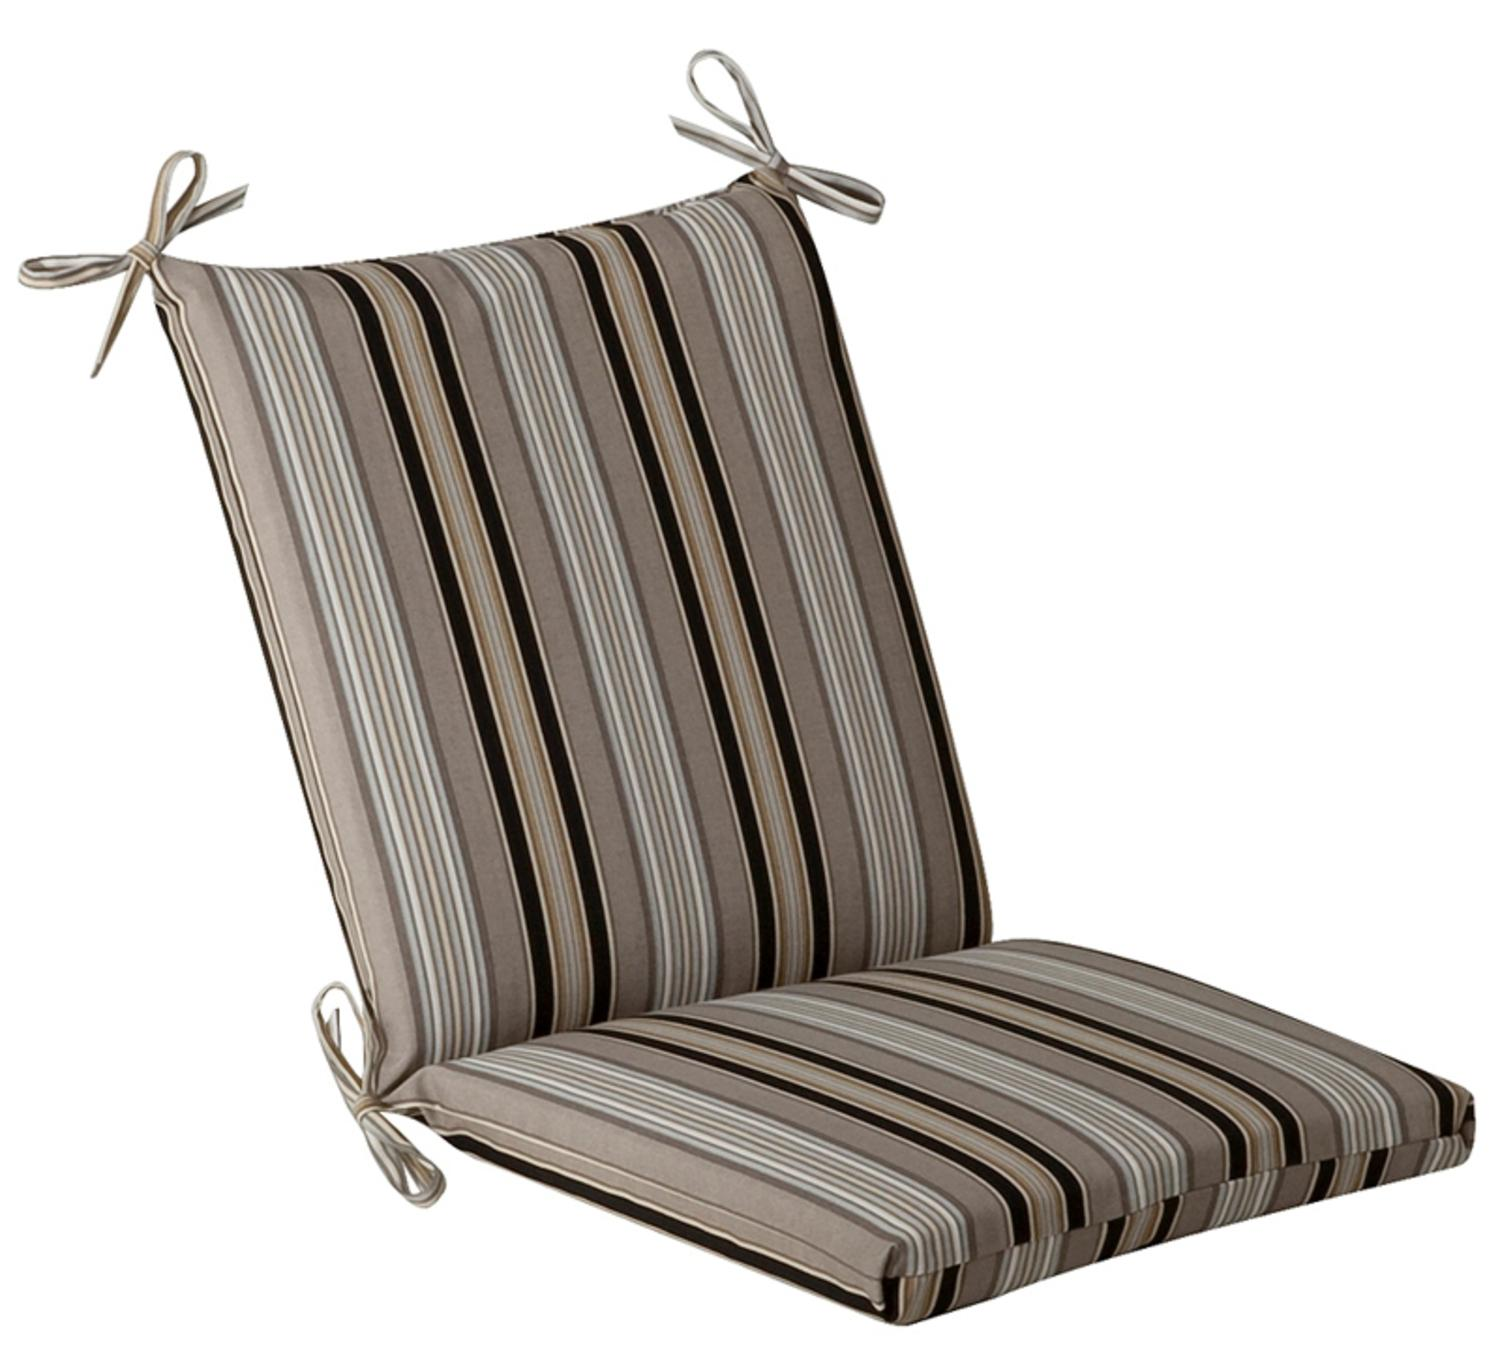 Outdoor Patio Furniture Mid Back Chair Cushion Black & Tan Striped Voyage by CC Home Furnishings